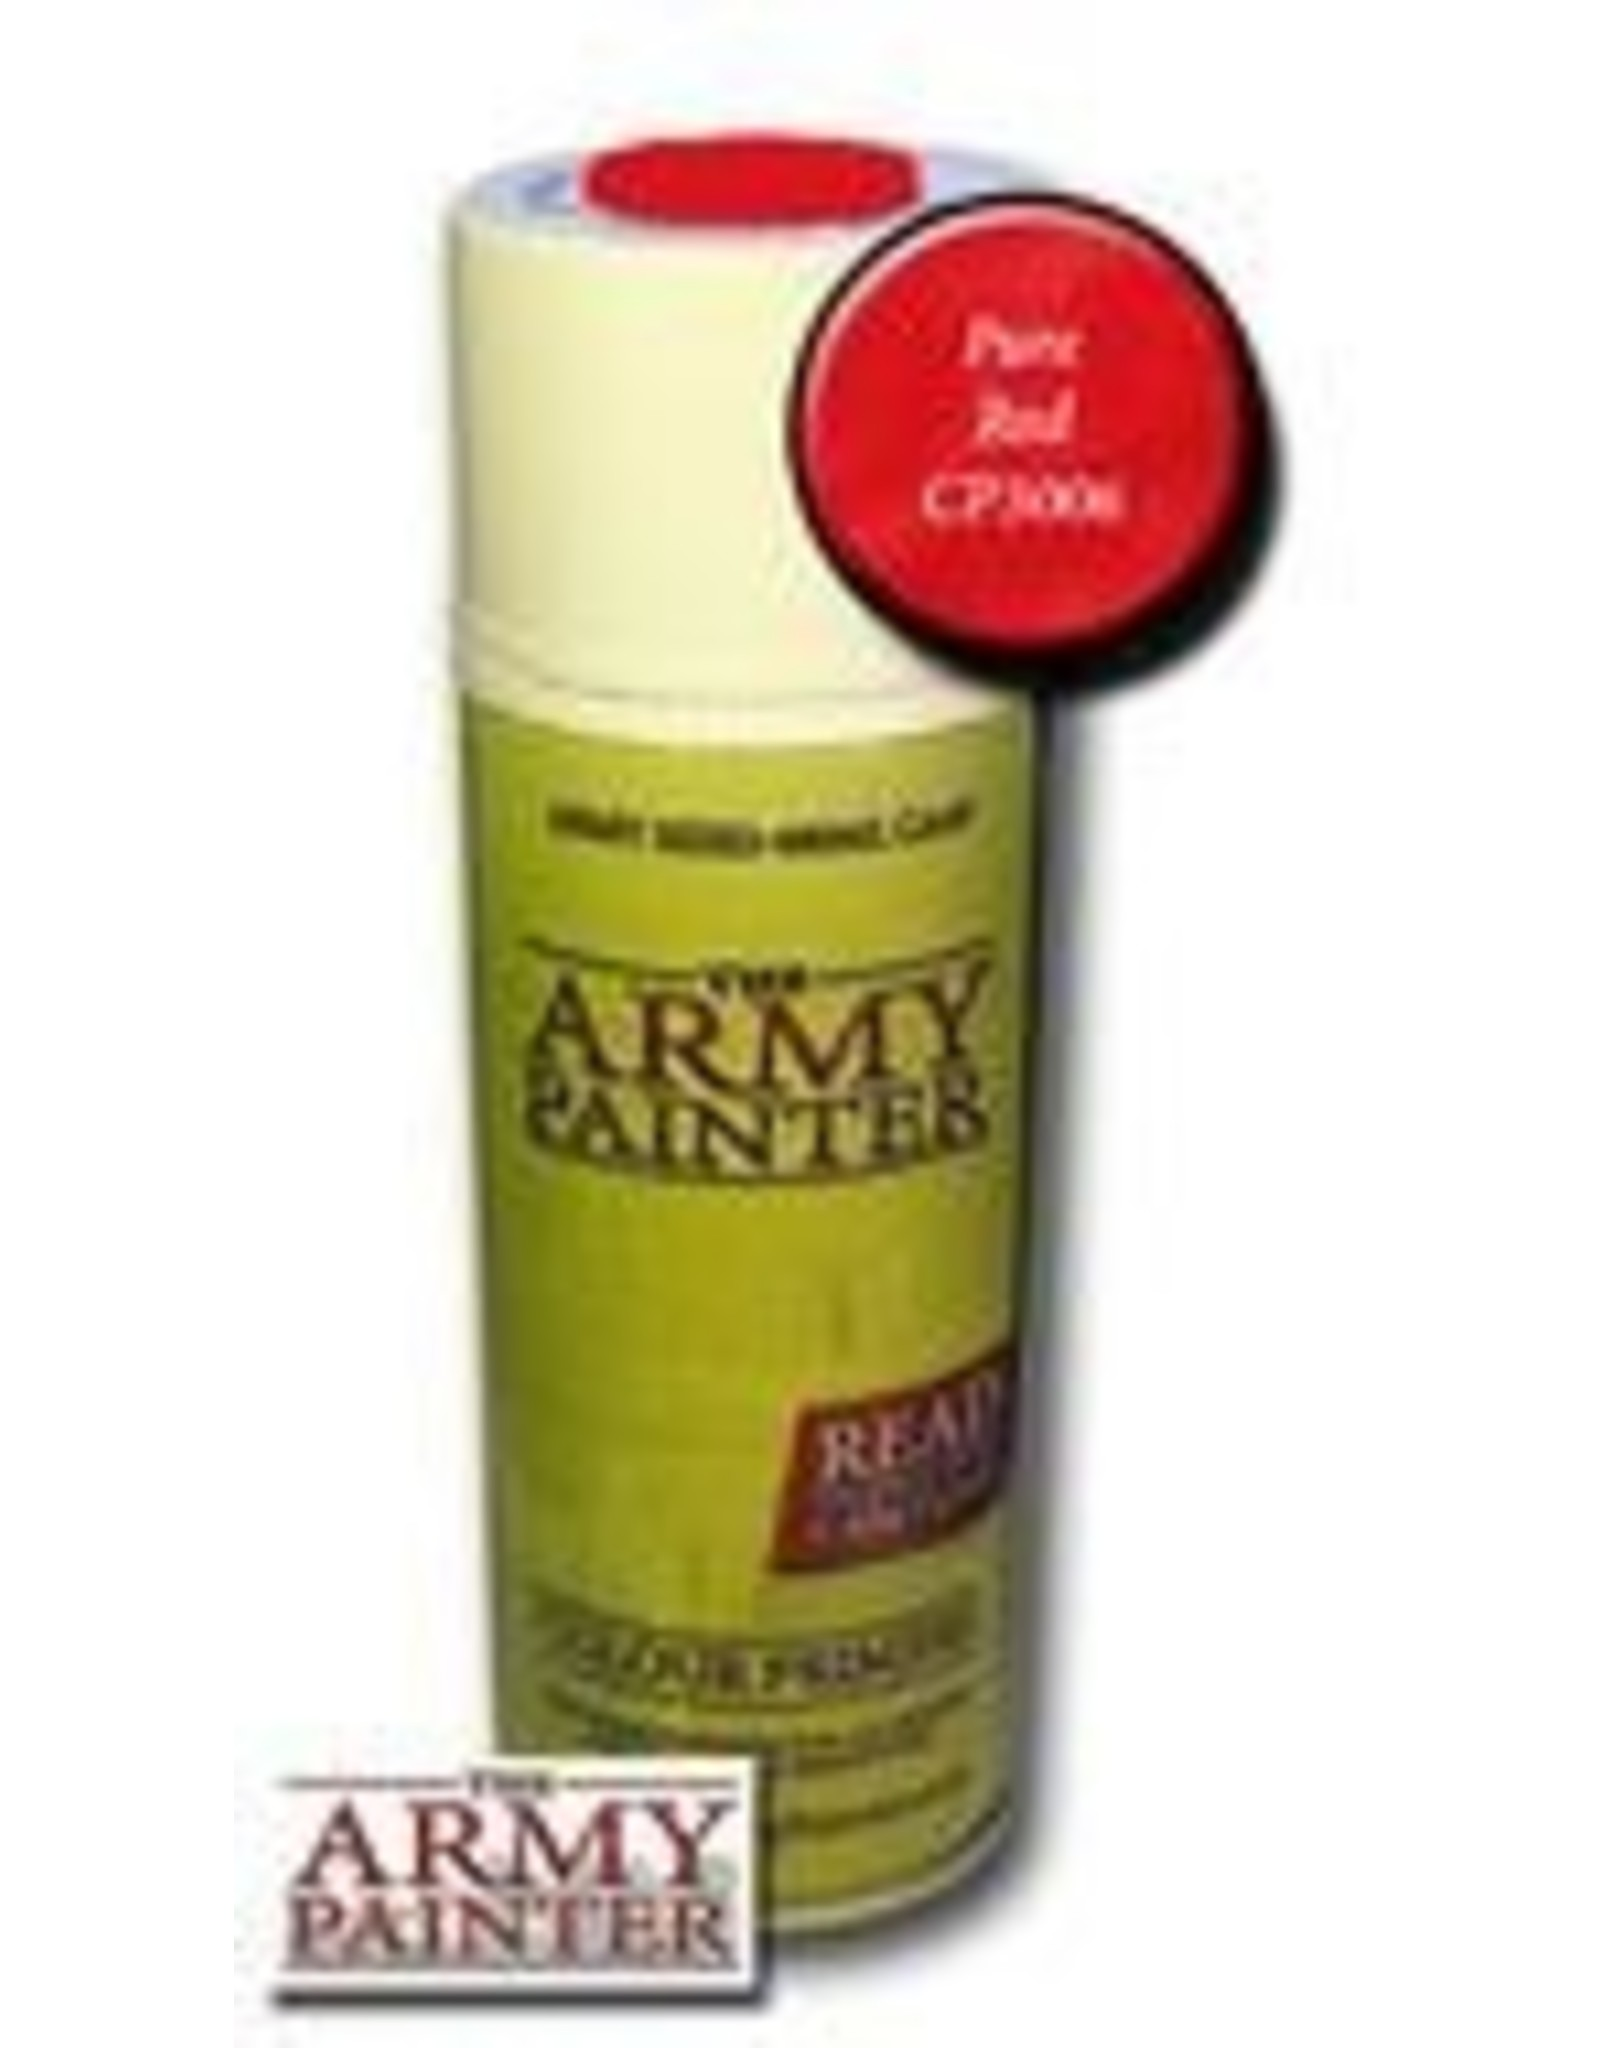 Army Painter Colour Primer: Pure Red